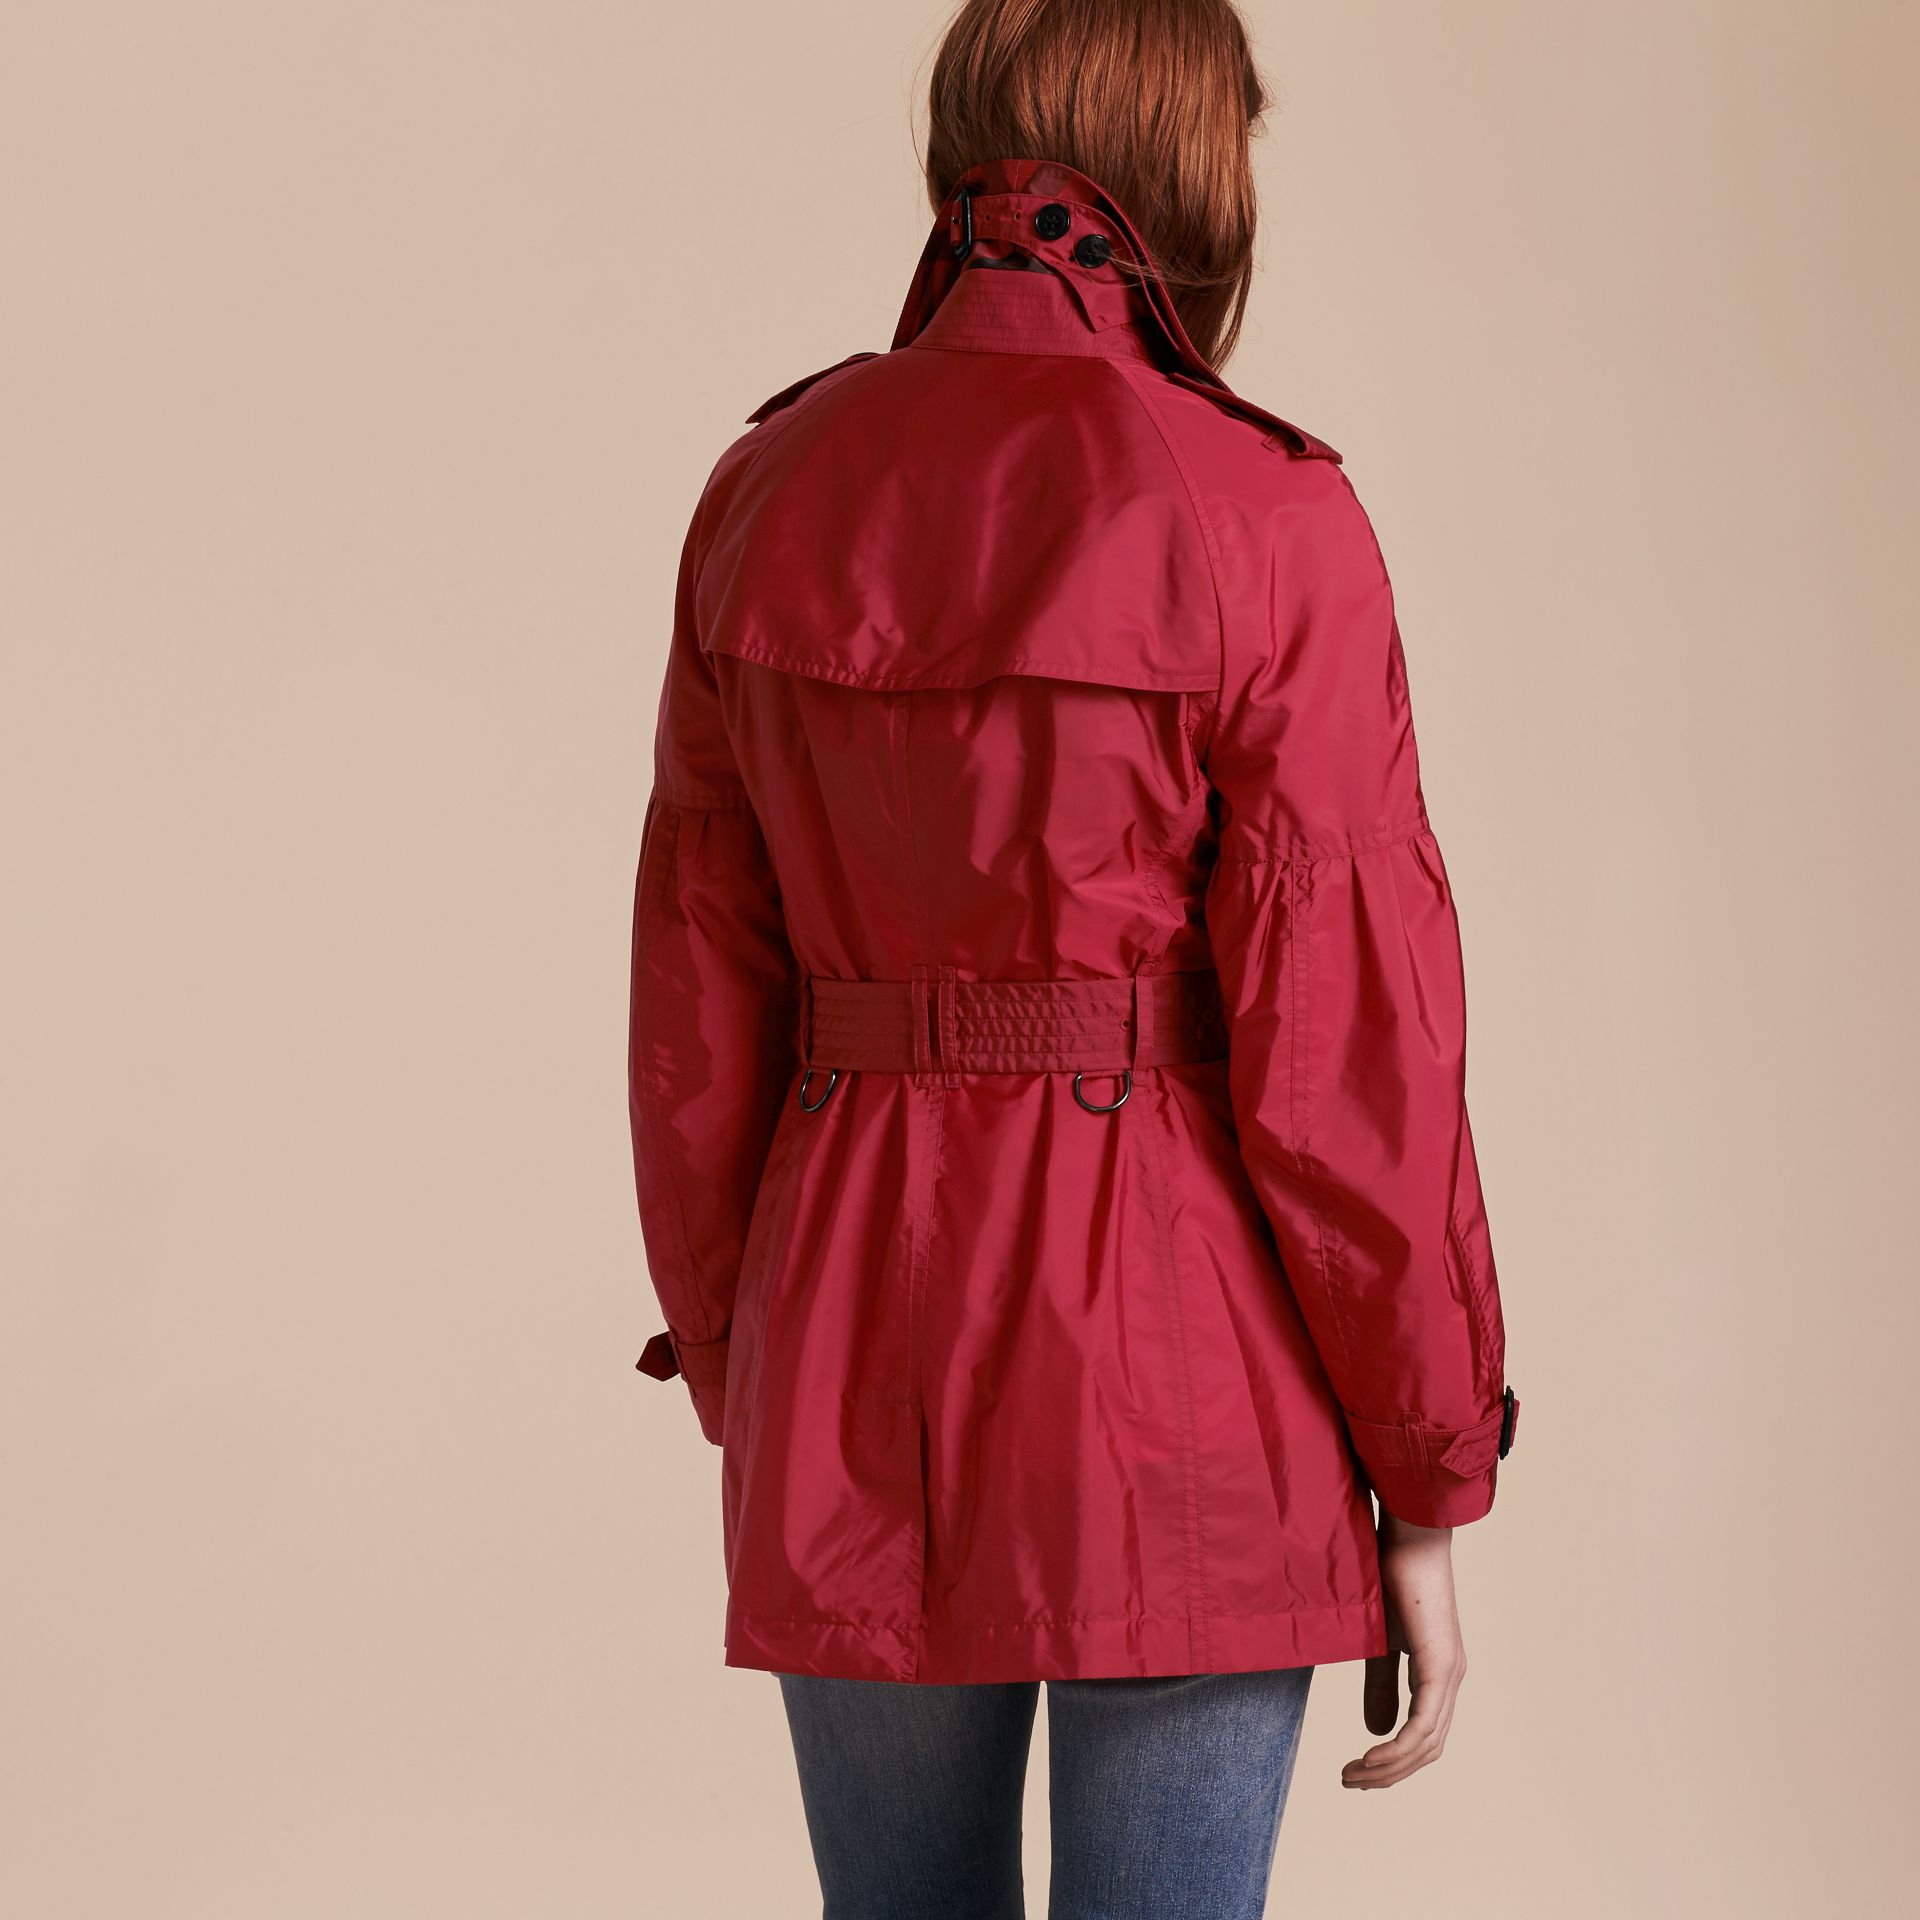 Parade red Packaway Trench Coat with Puff Sleeves - gallery image 3